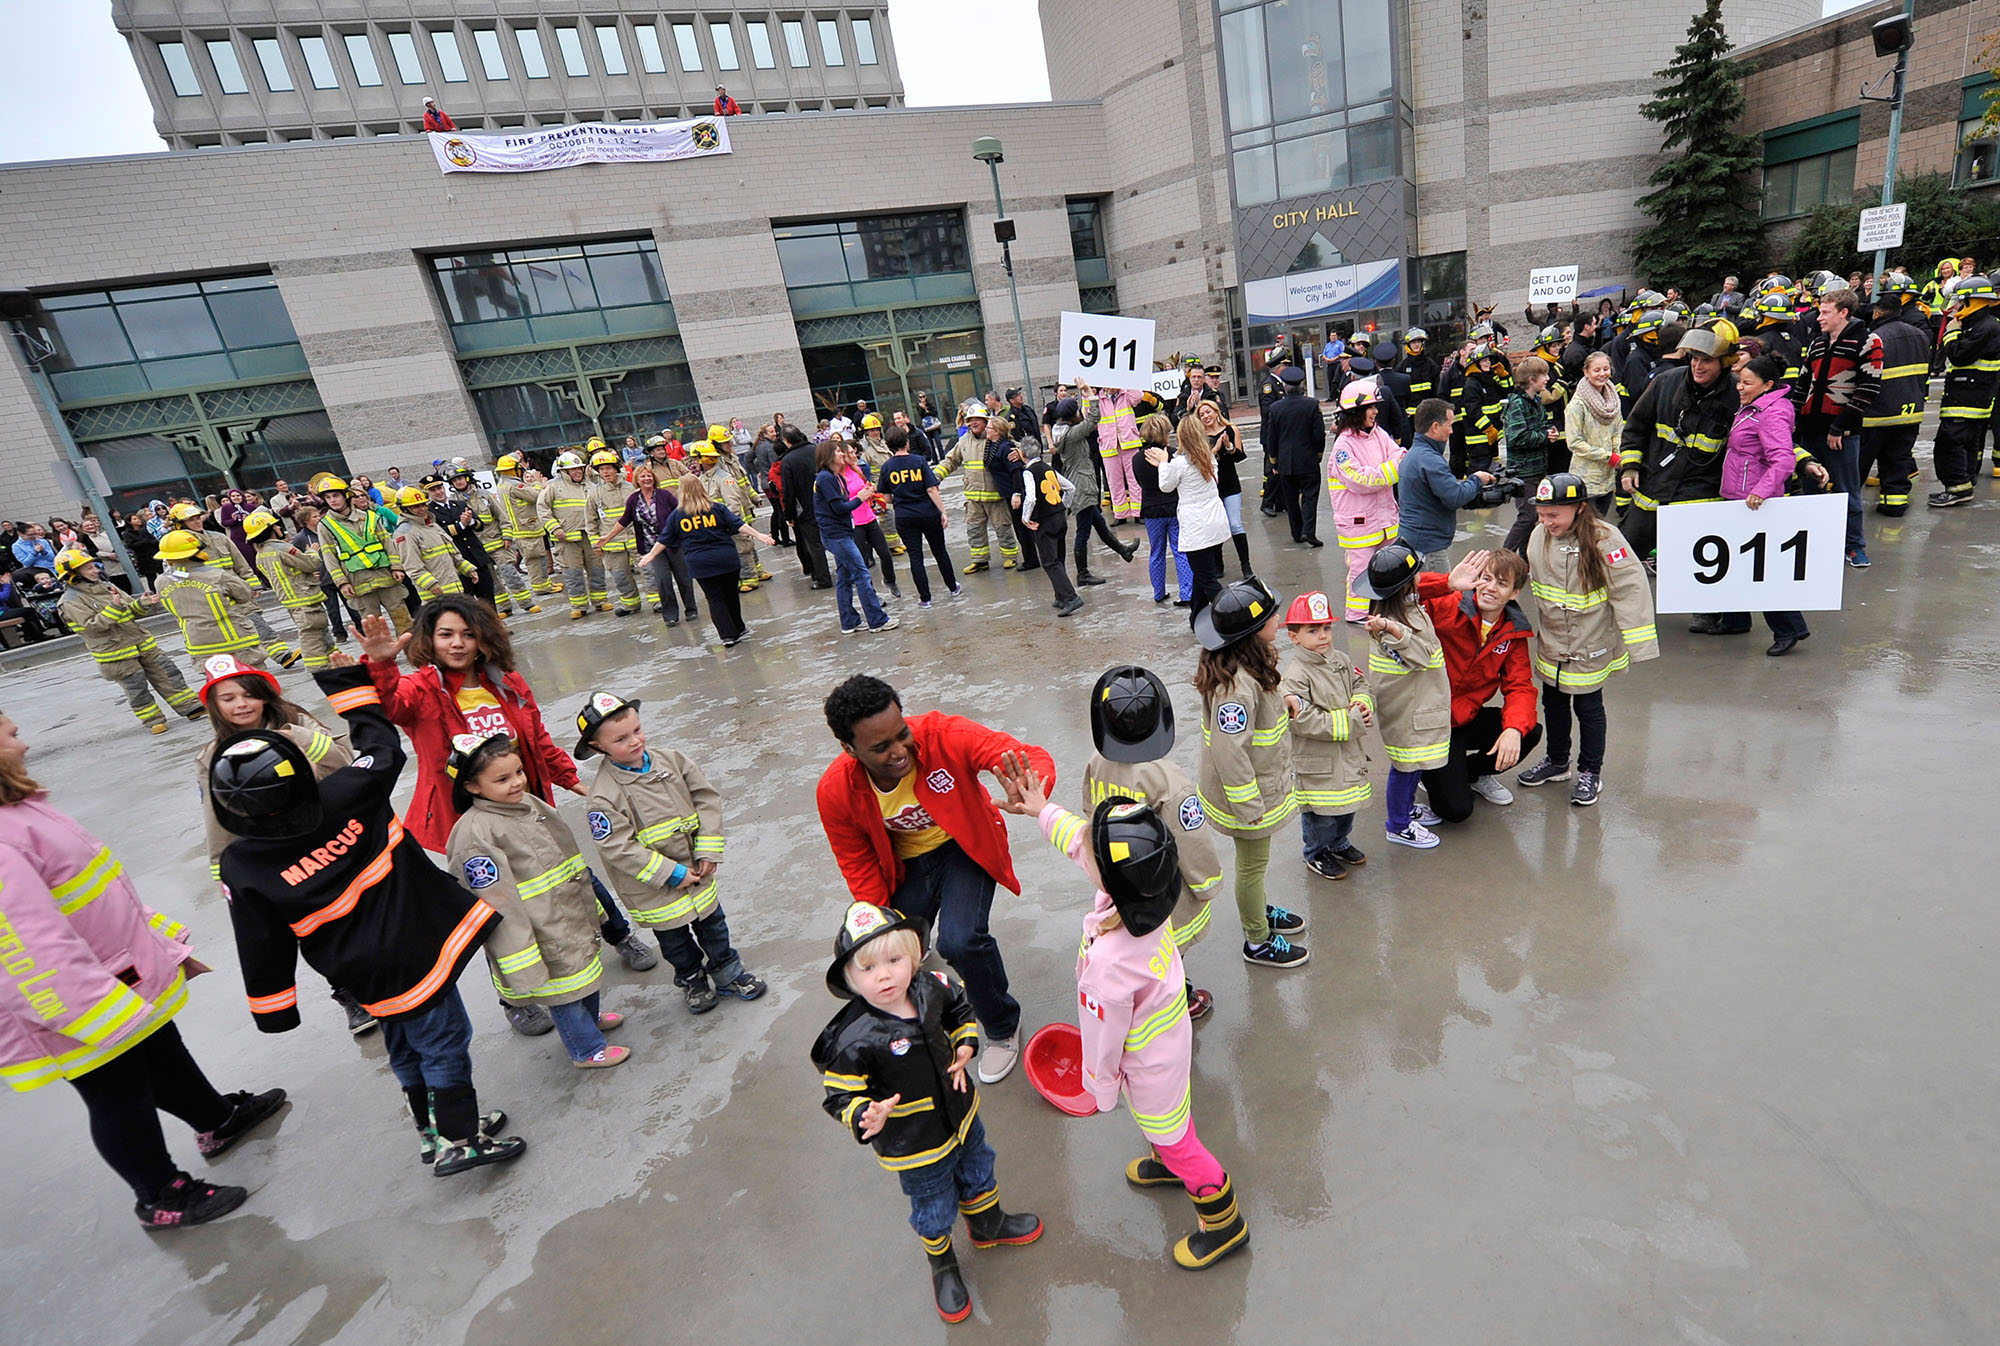 CITY OF BARRIE - Dogs fly and firefighters dance in flash mob to